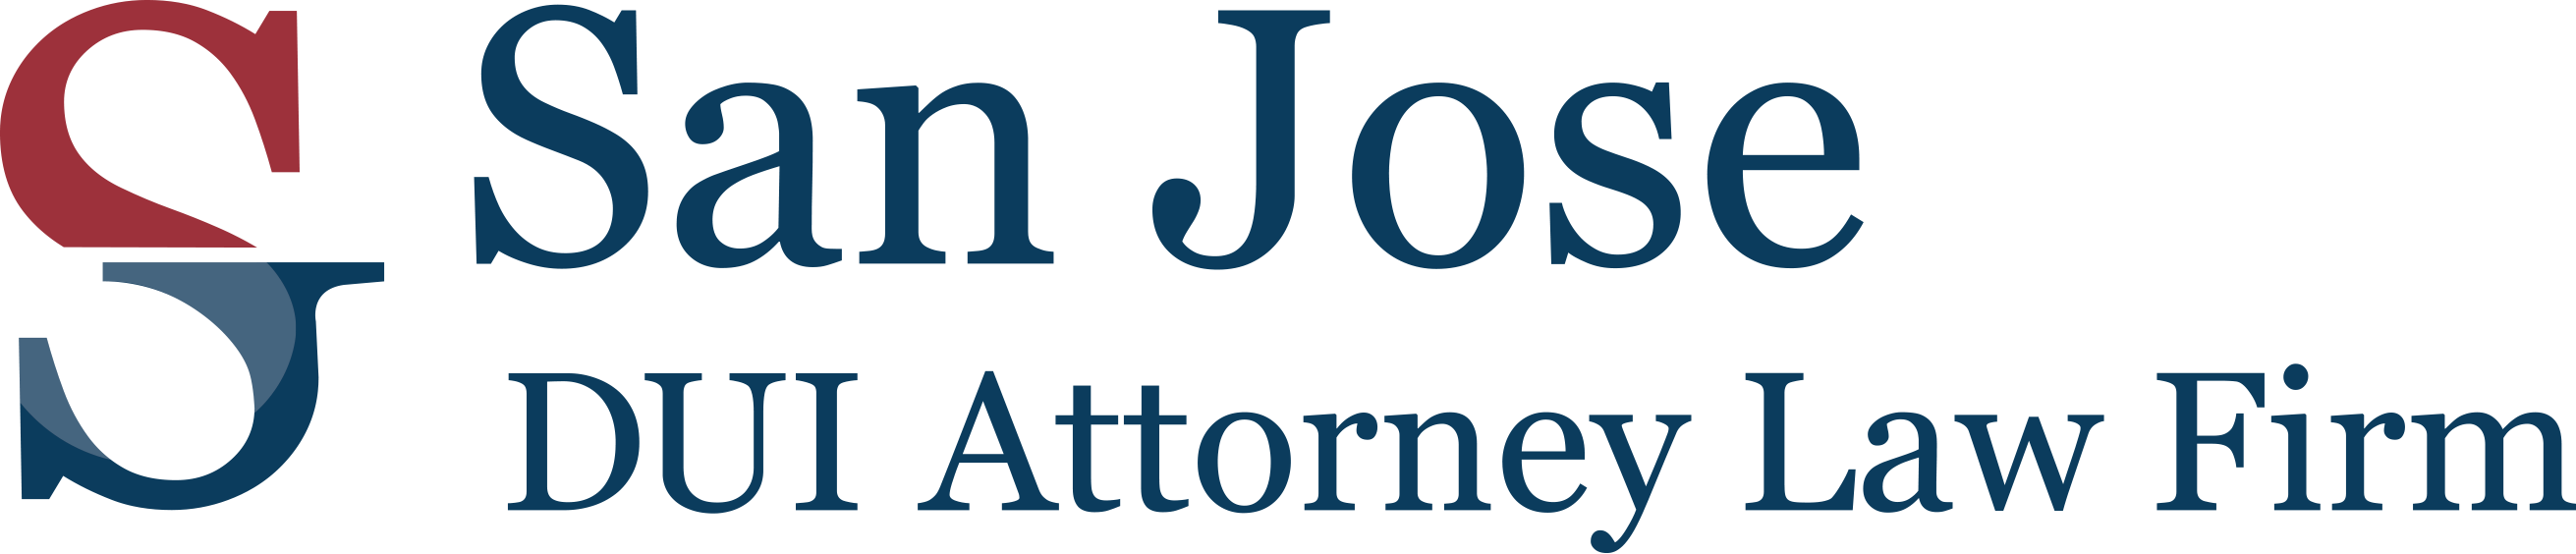 San Jose DUI Attorney Law Firm logo